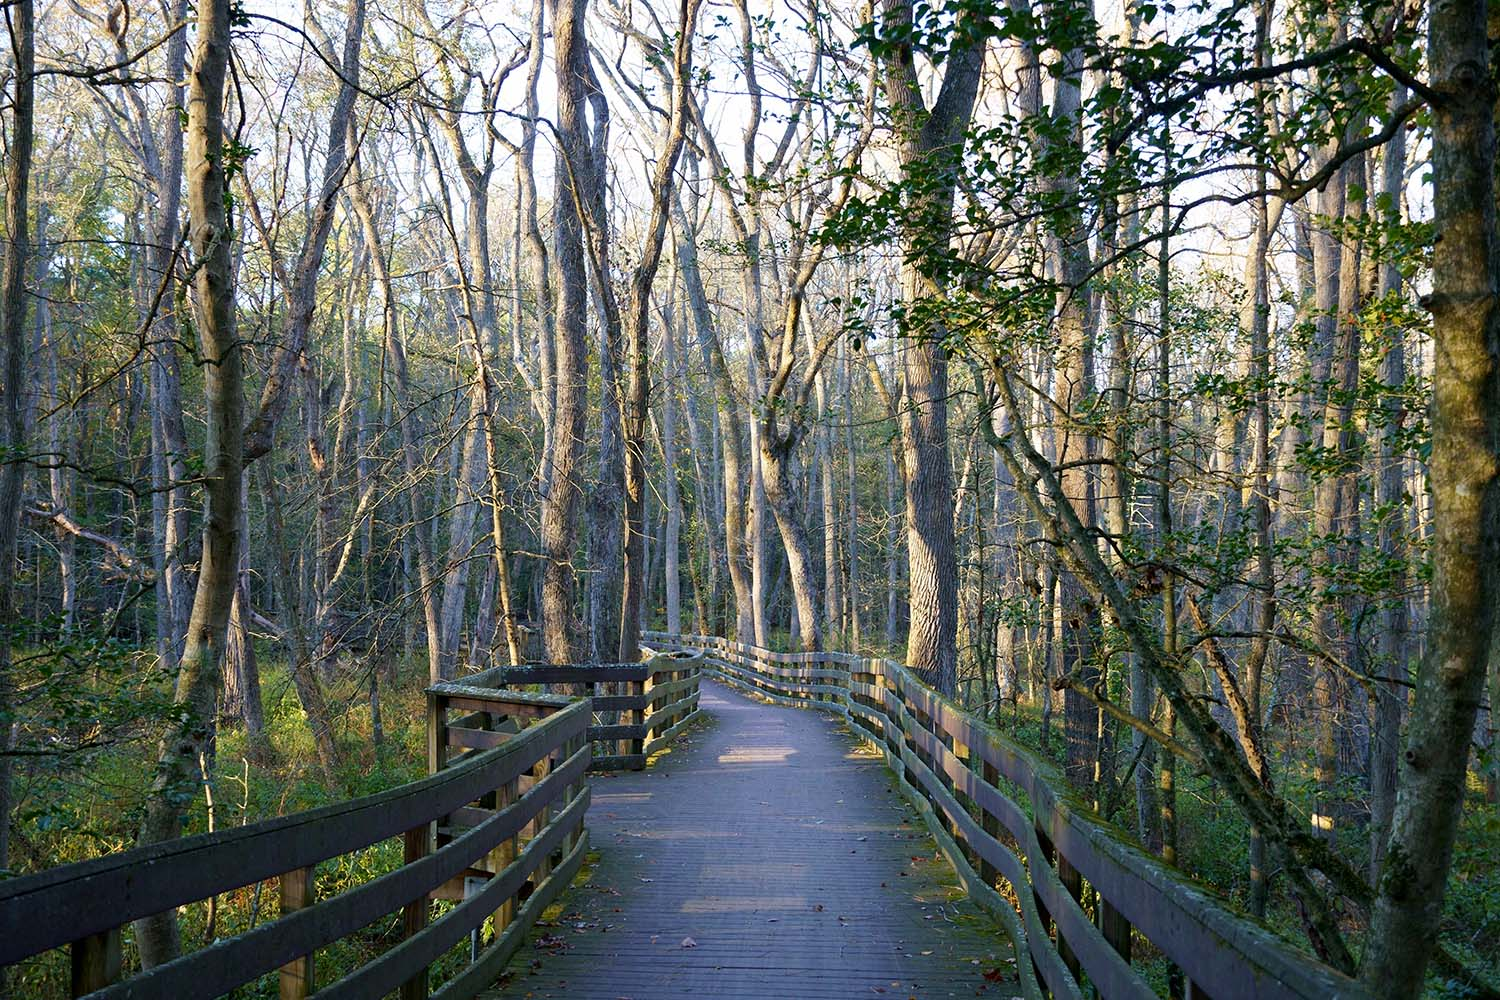 Sun shining through the trees on the boardwalk in Trap Pond State Park, Delaware, USA